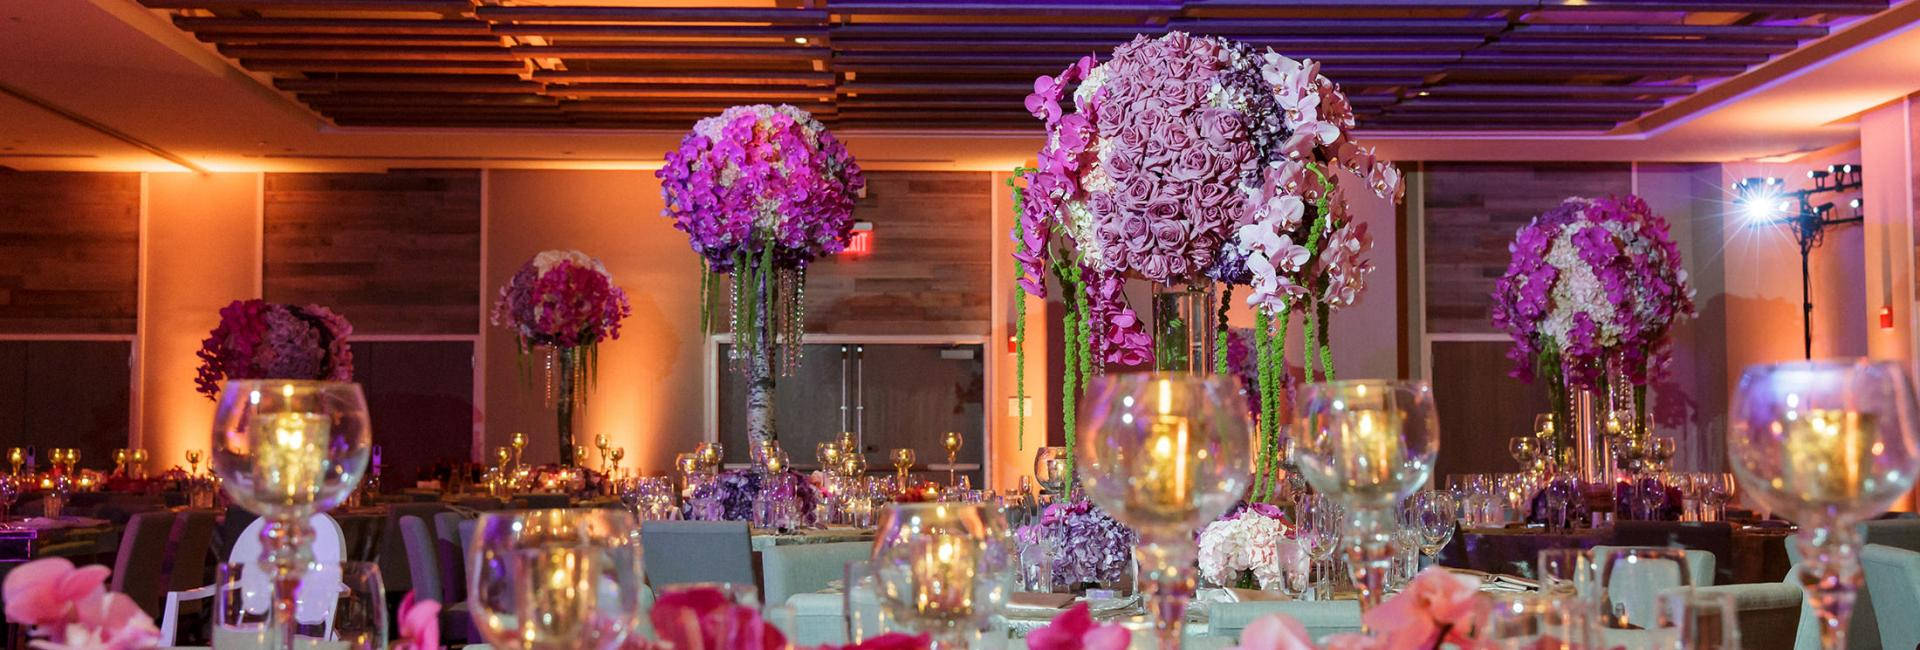 Banquet Tables With Fl Arrangements In Ballroom At 1 Hotels South Beach For Wedding